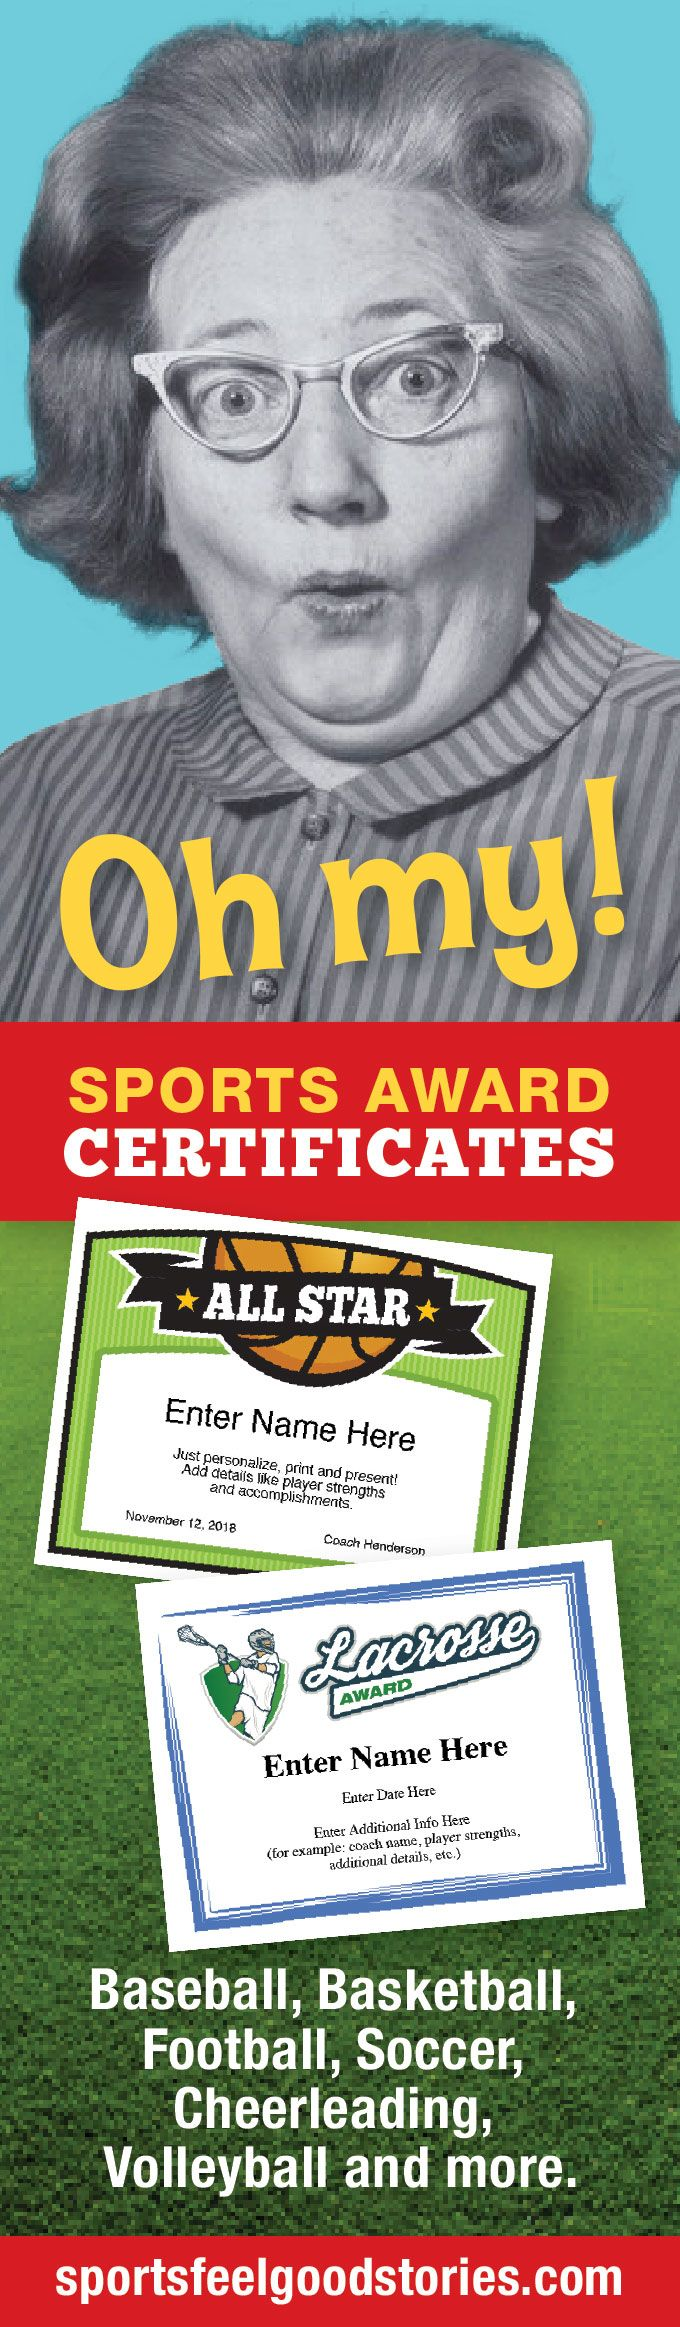 Sports Certificates Templates To Create Awards